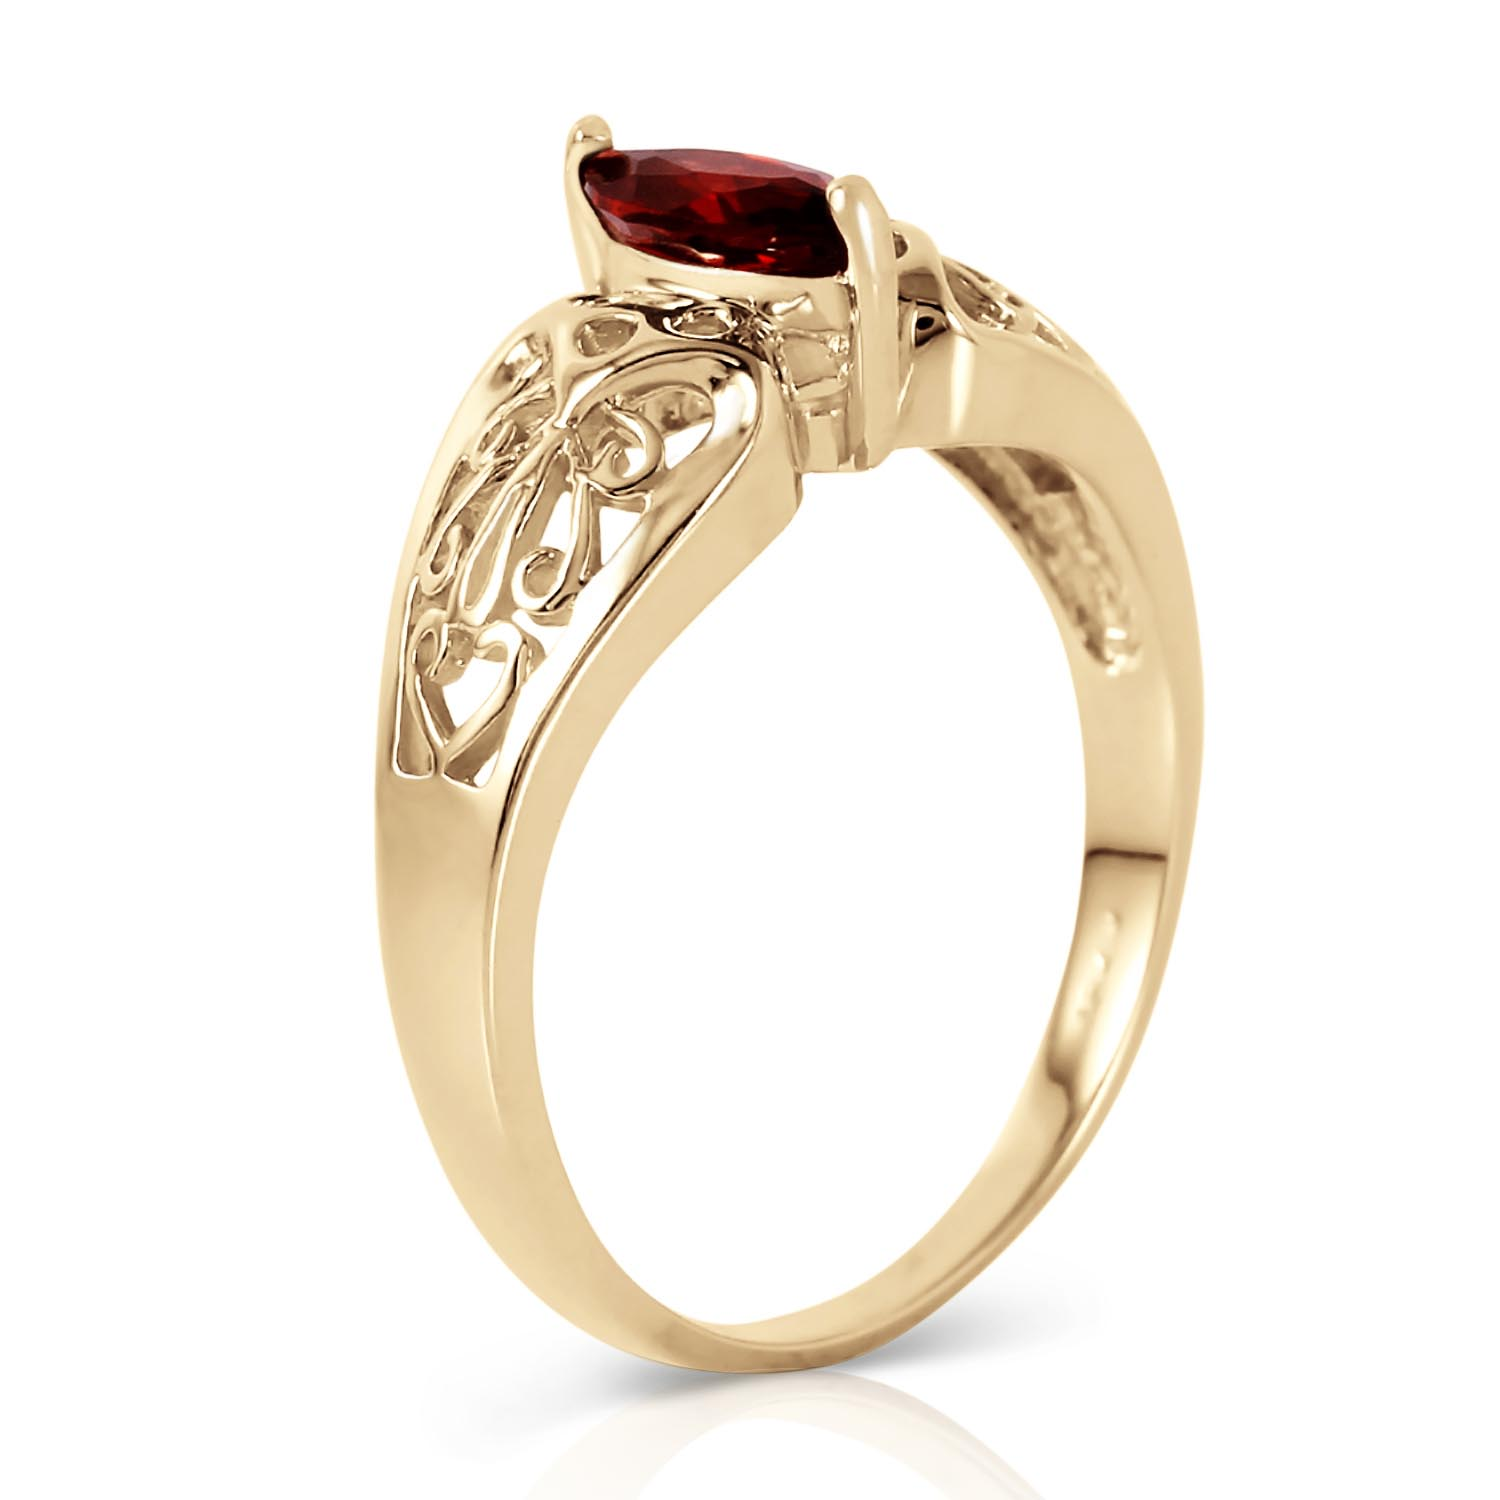 Marquise Cut Garnet Filigree Ring 0.2ct in 14K Gold